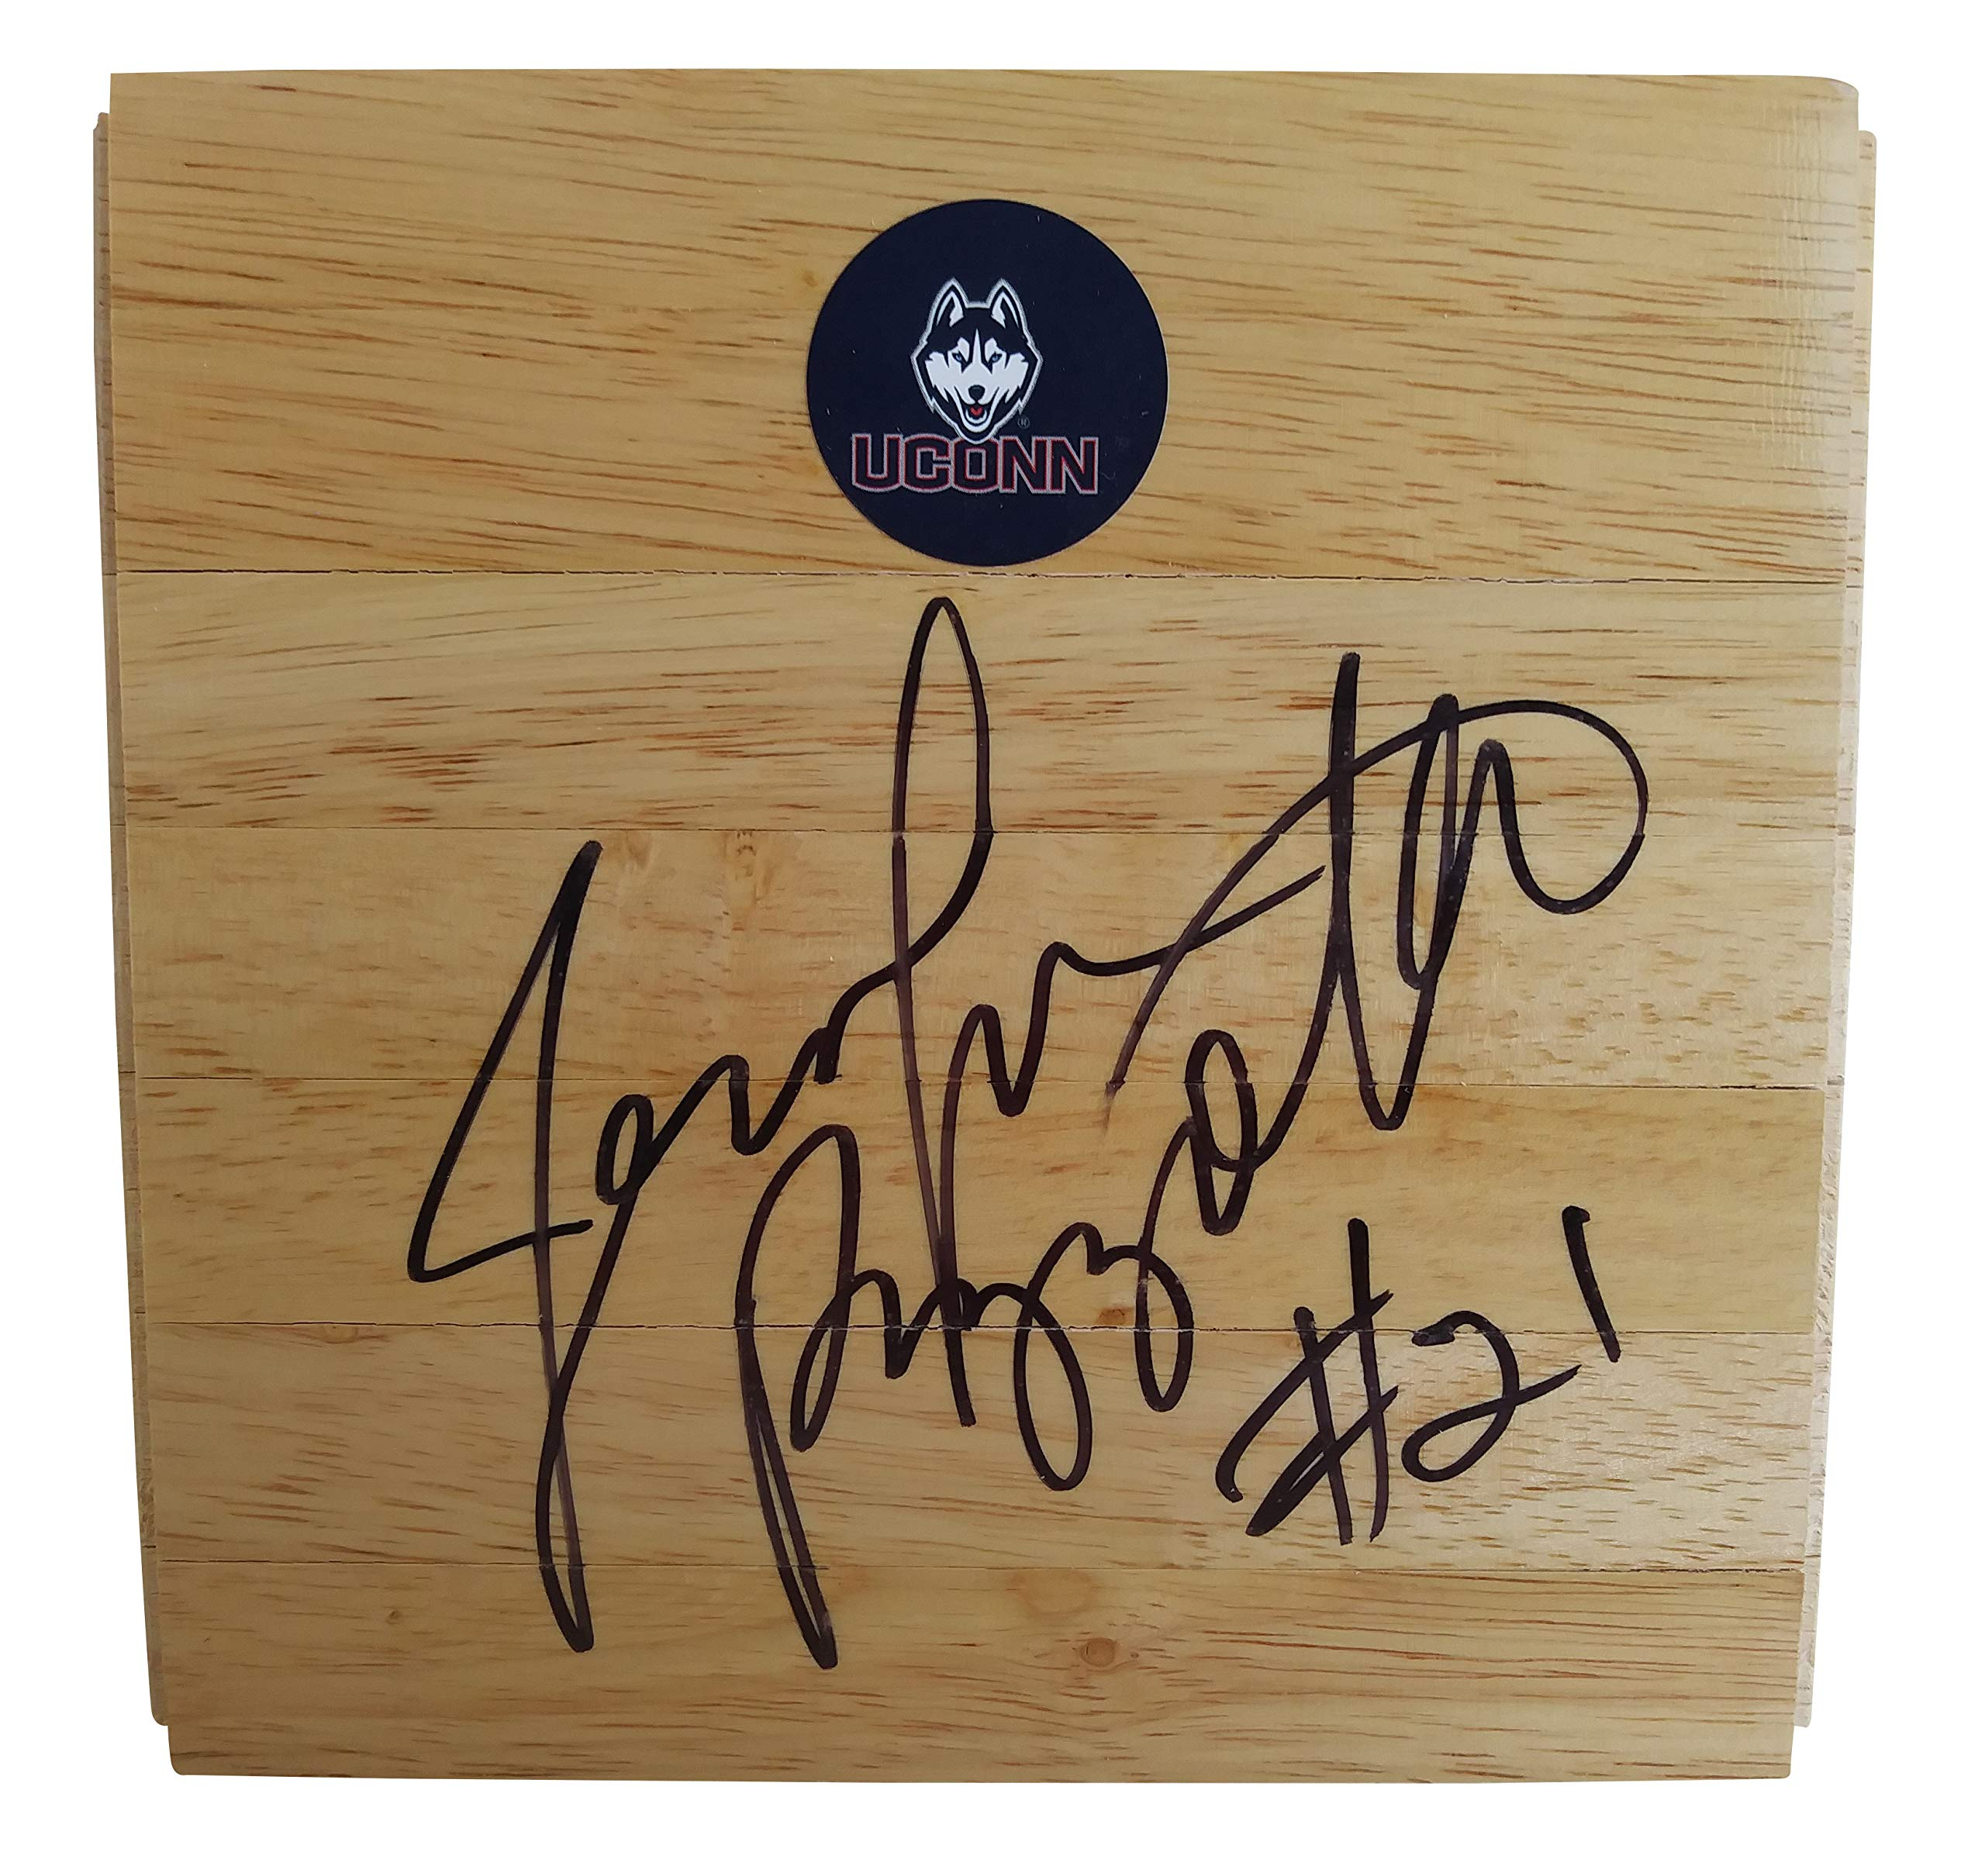 UConn Huskies Jennifer Rizzotti Autographed Hand Signed 6x6 Parquet Logo Floorboard with Proof Photo, Team USA, Houston Comets, Cleveland Rockers, George Washington Generals Basketball Floor Boards